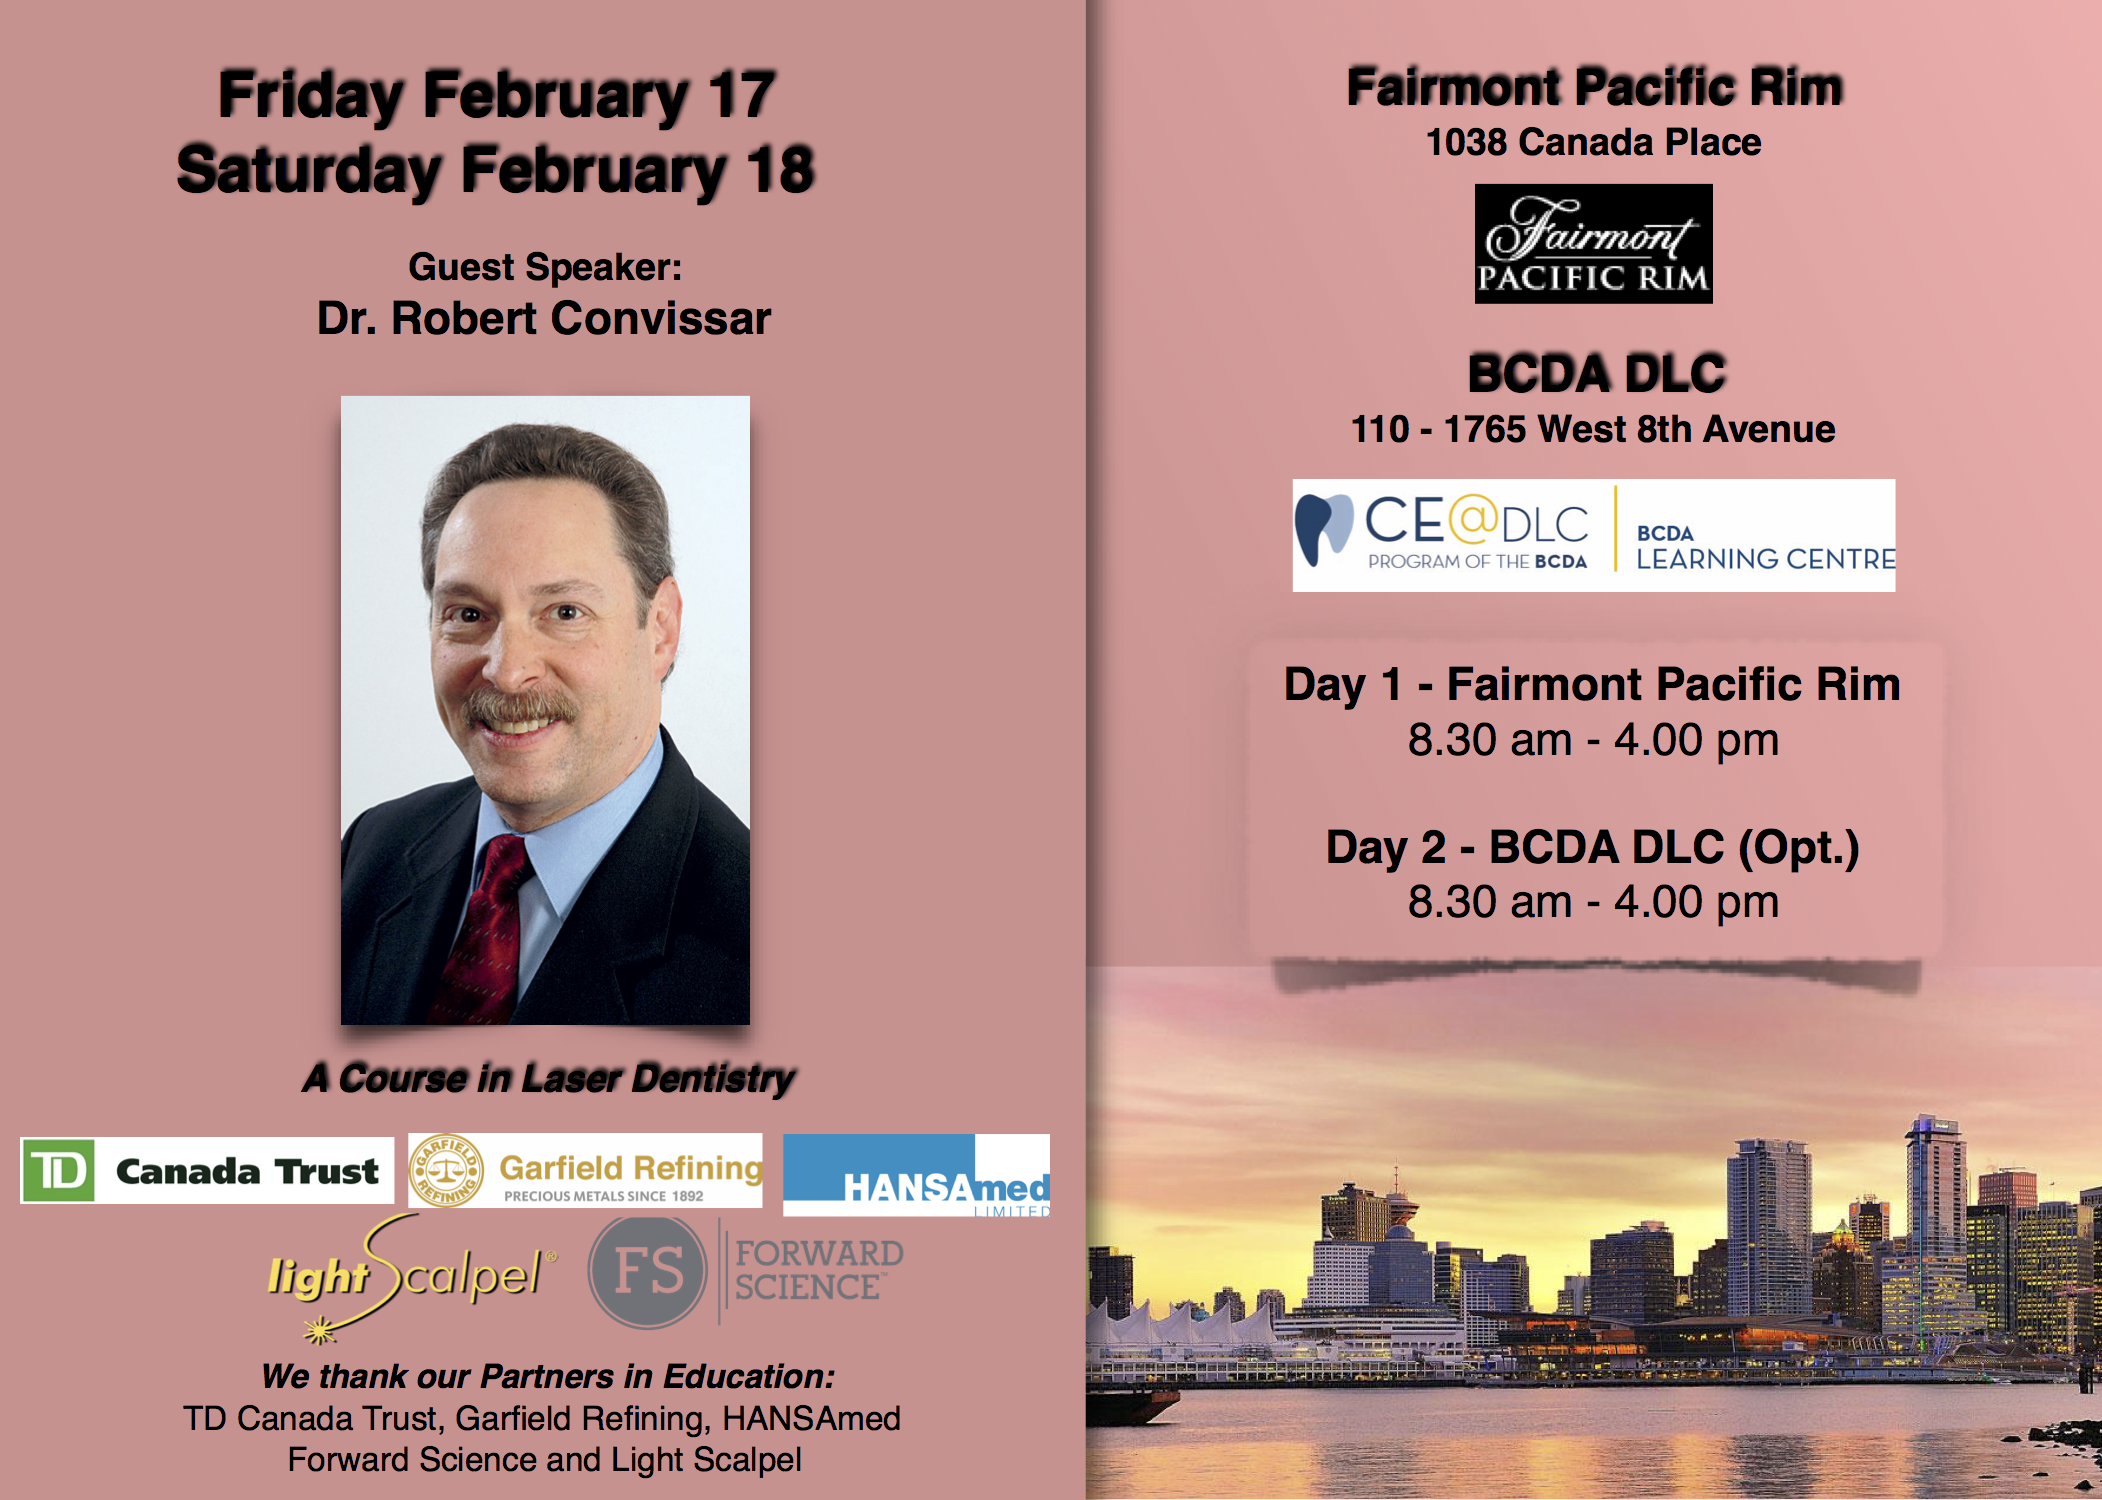 VDDS Lecture - A Course in Laser Dentistry - February 17 and 18, 2017